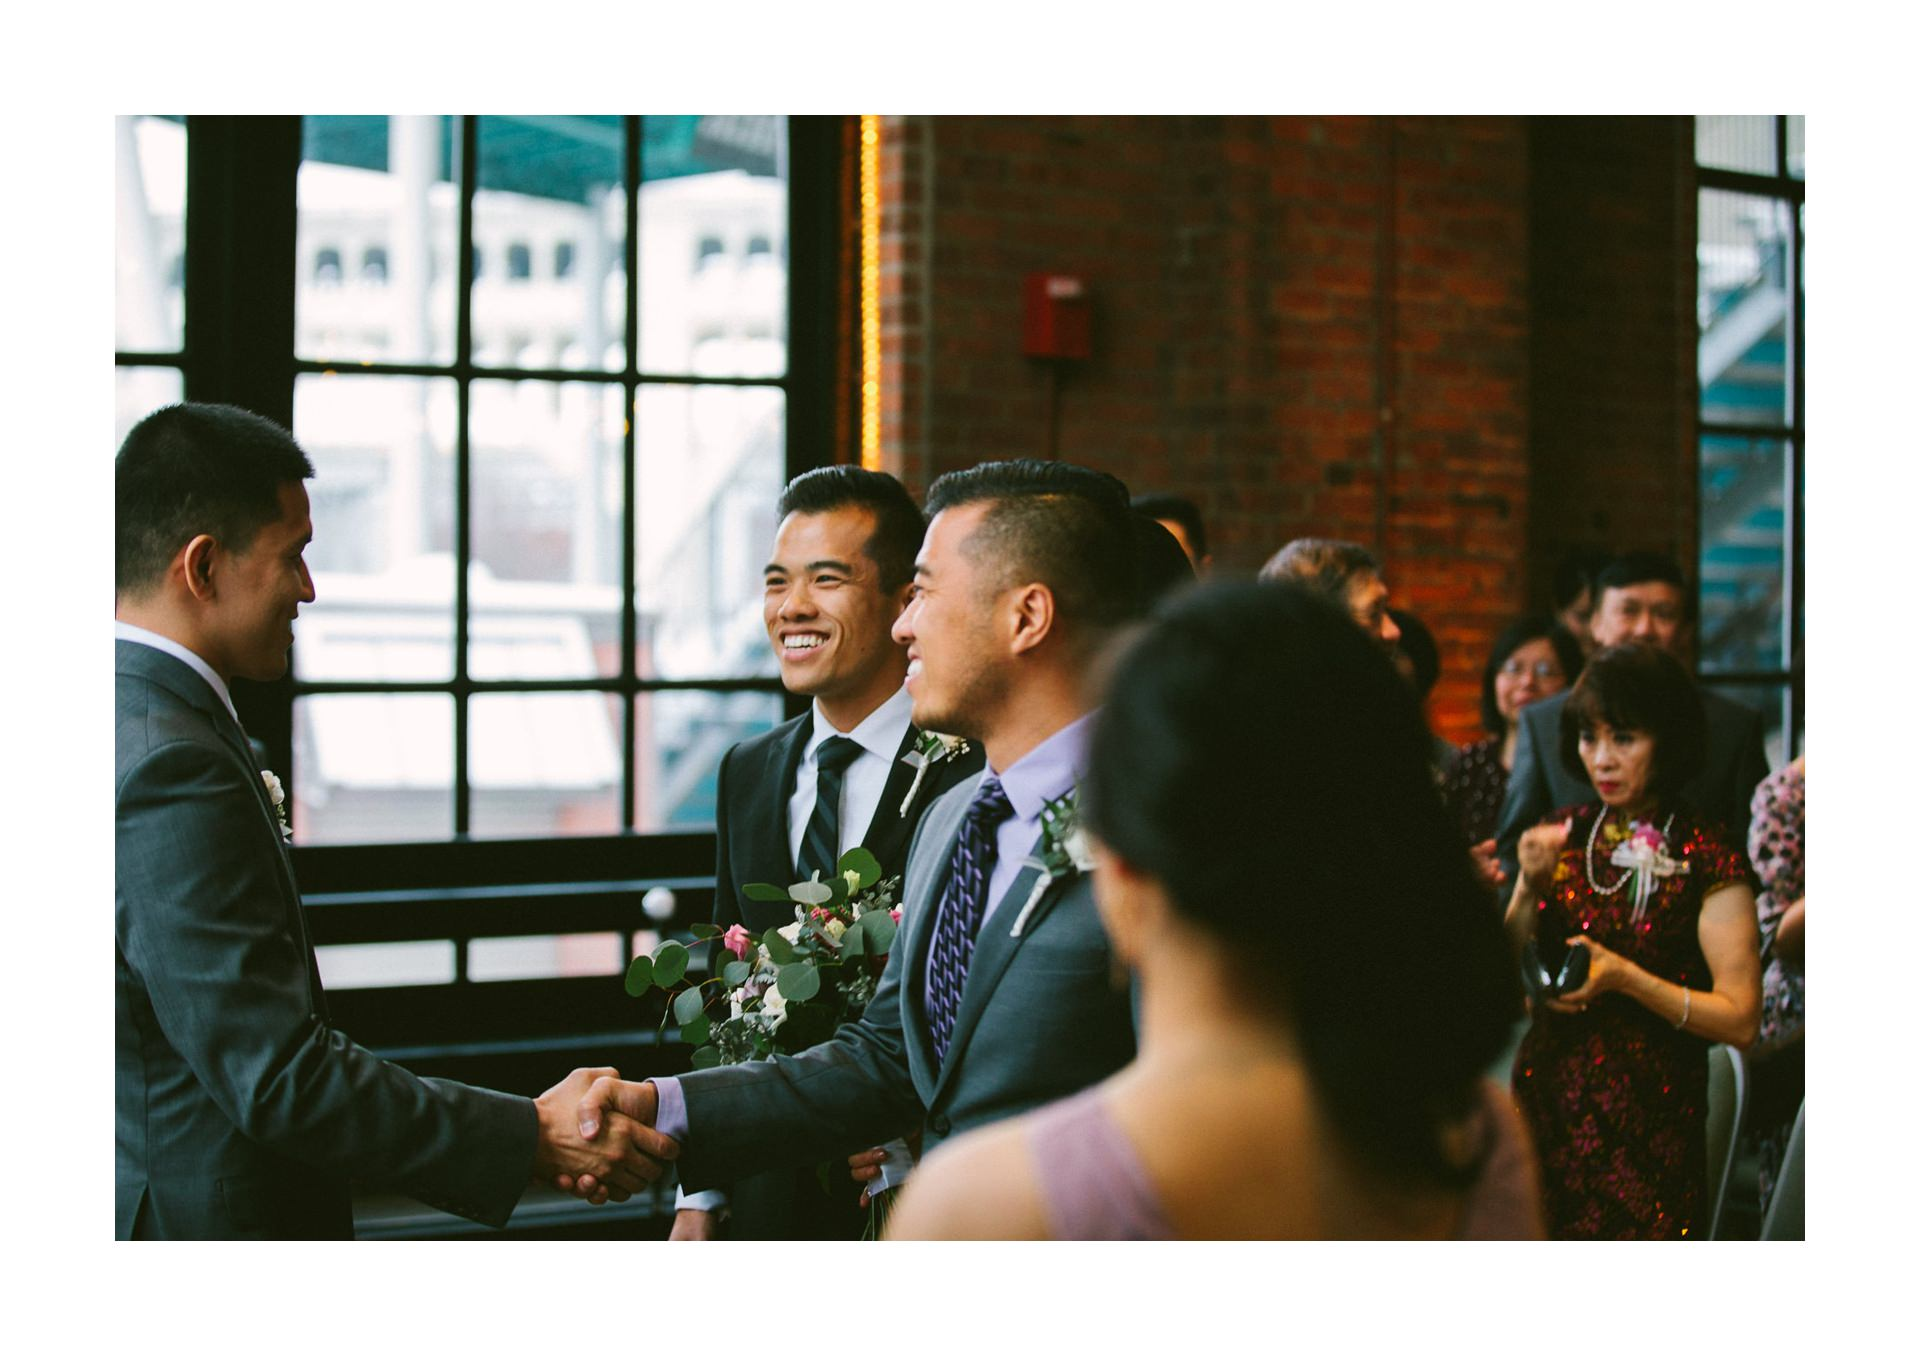 Windows on the River Winter Wedding Photographer in Cleveland 71.jpg